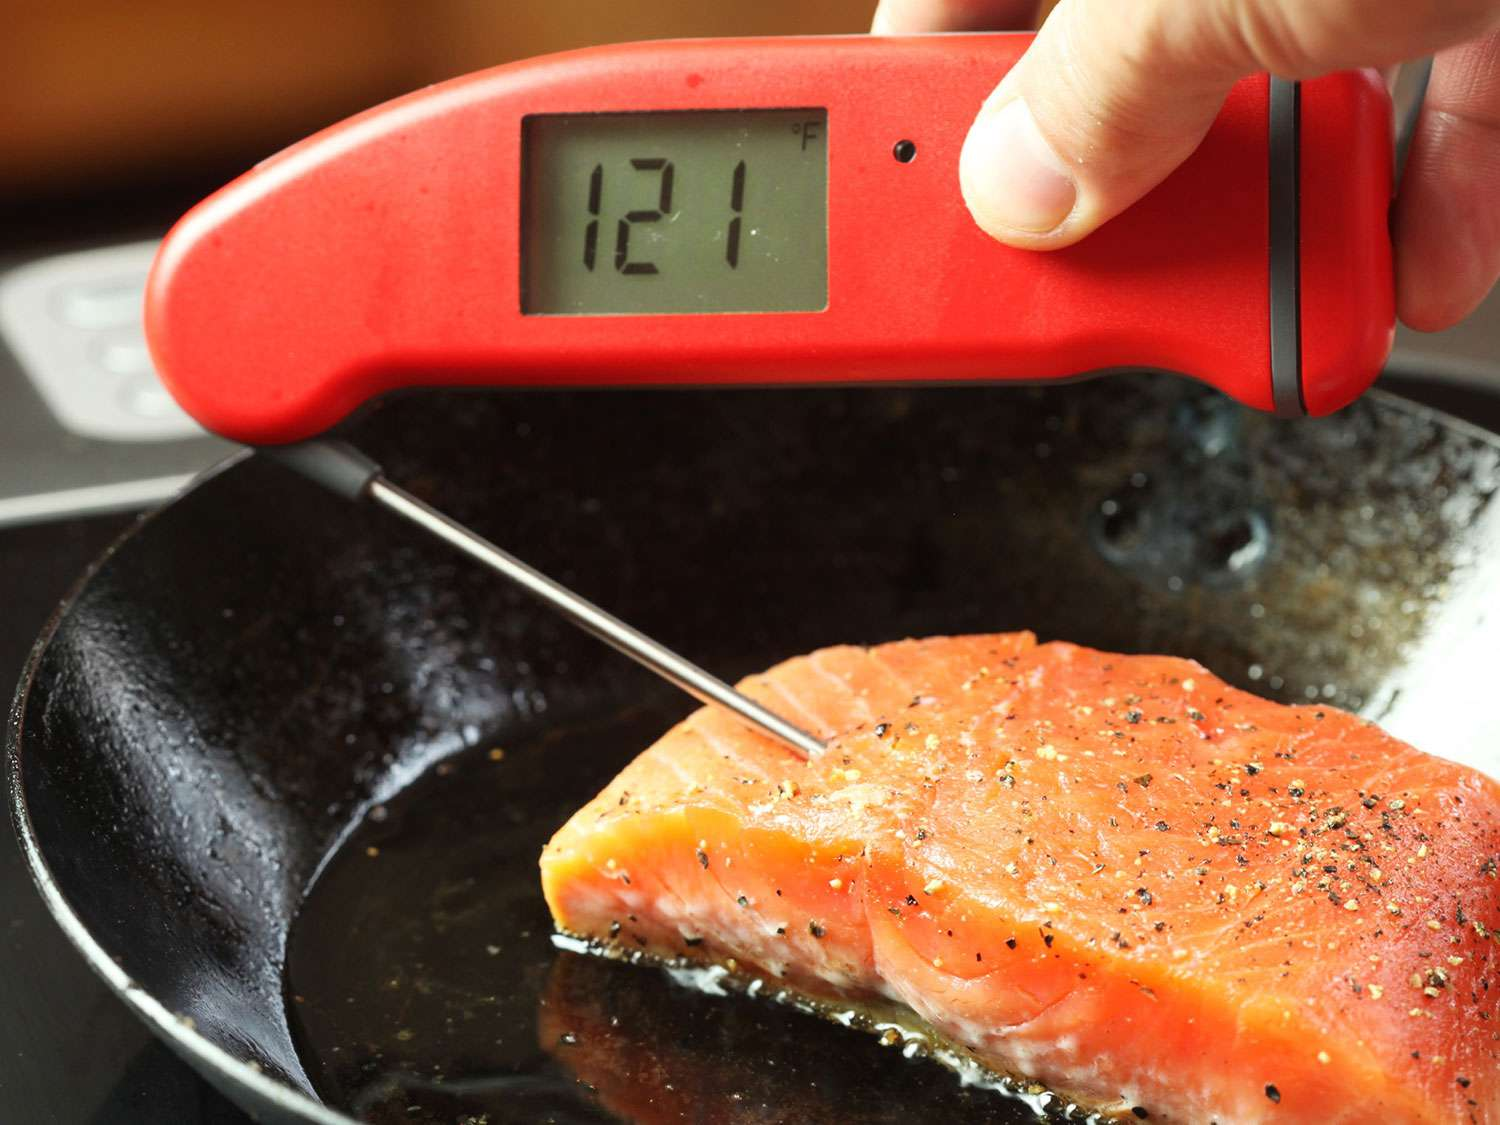 Using an instant read thermometer to see that interior of searing salmon fillet is 121F.